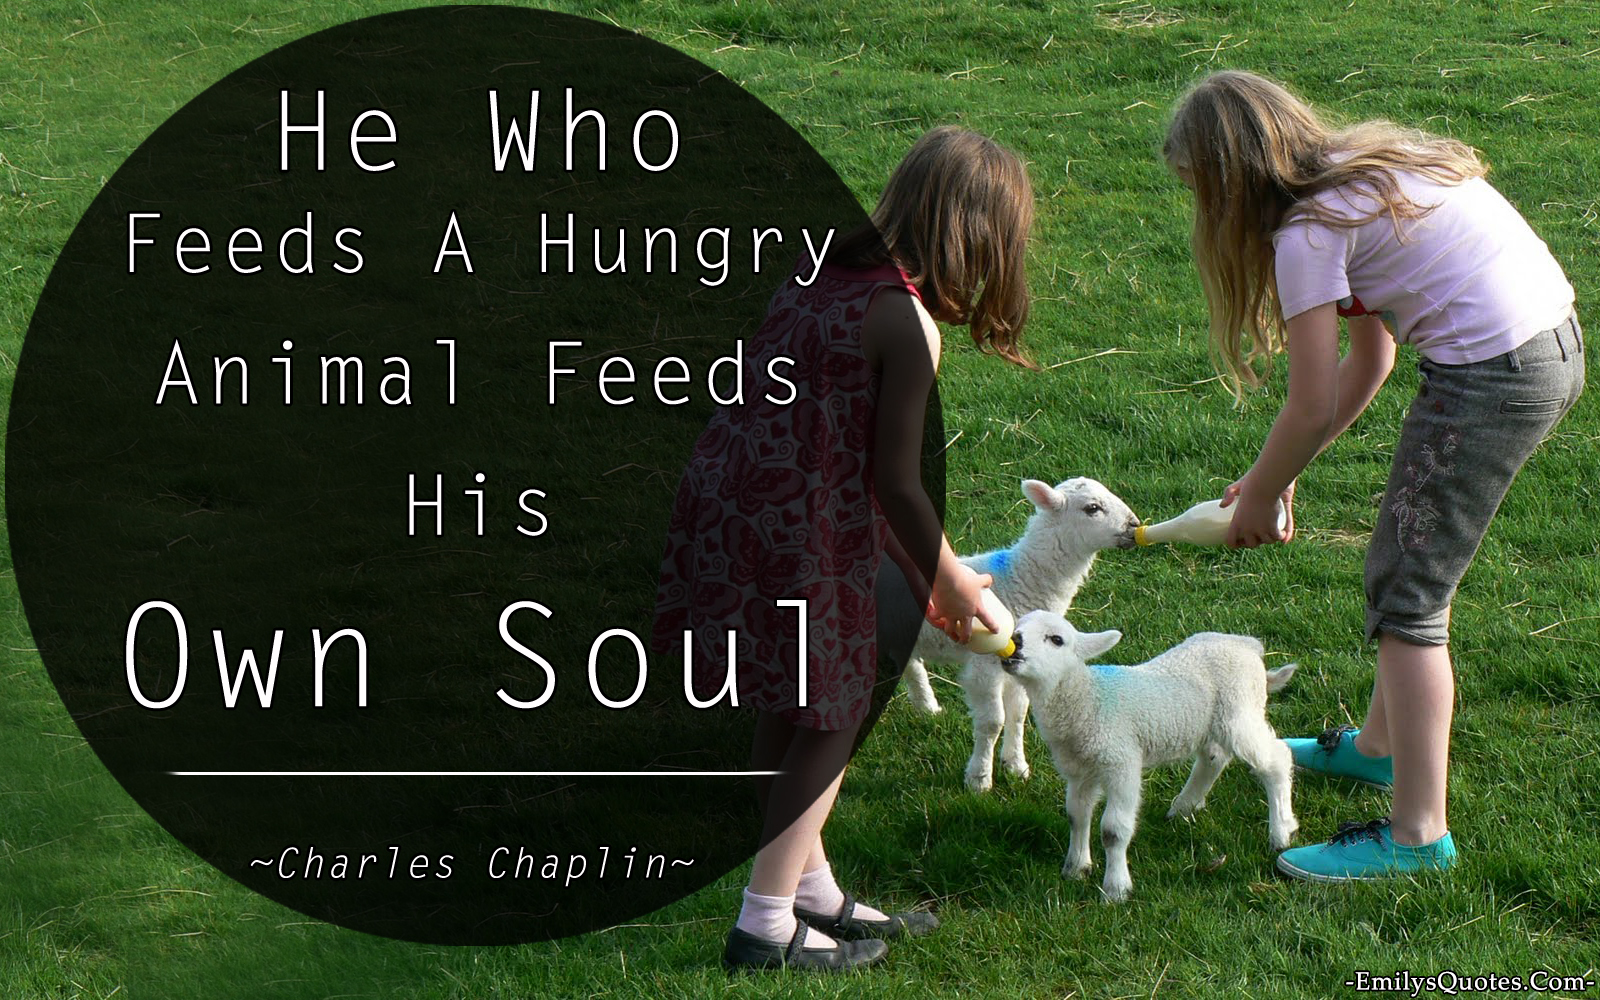 He Who Feeds A Hungry Animal Feeds His Own Soul